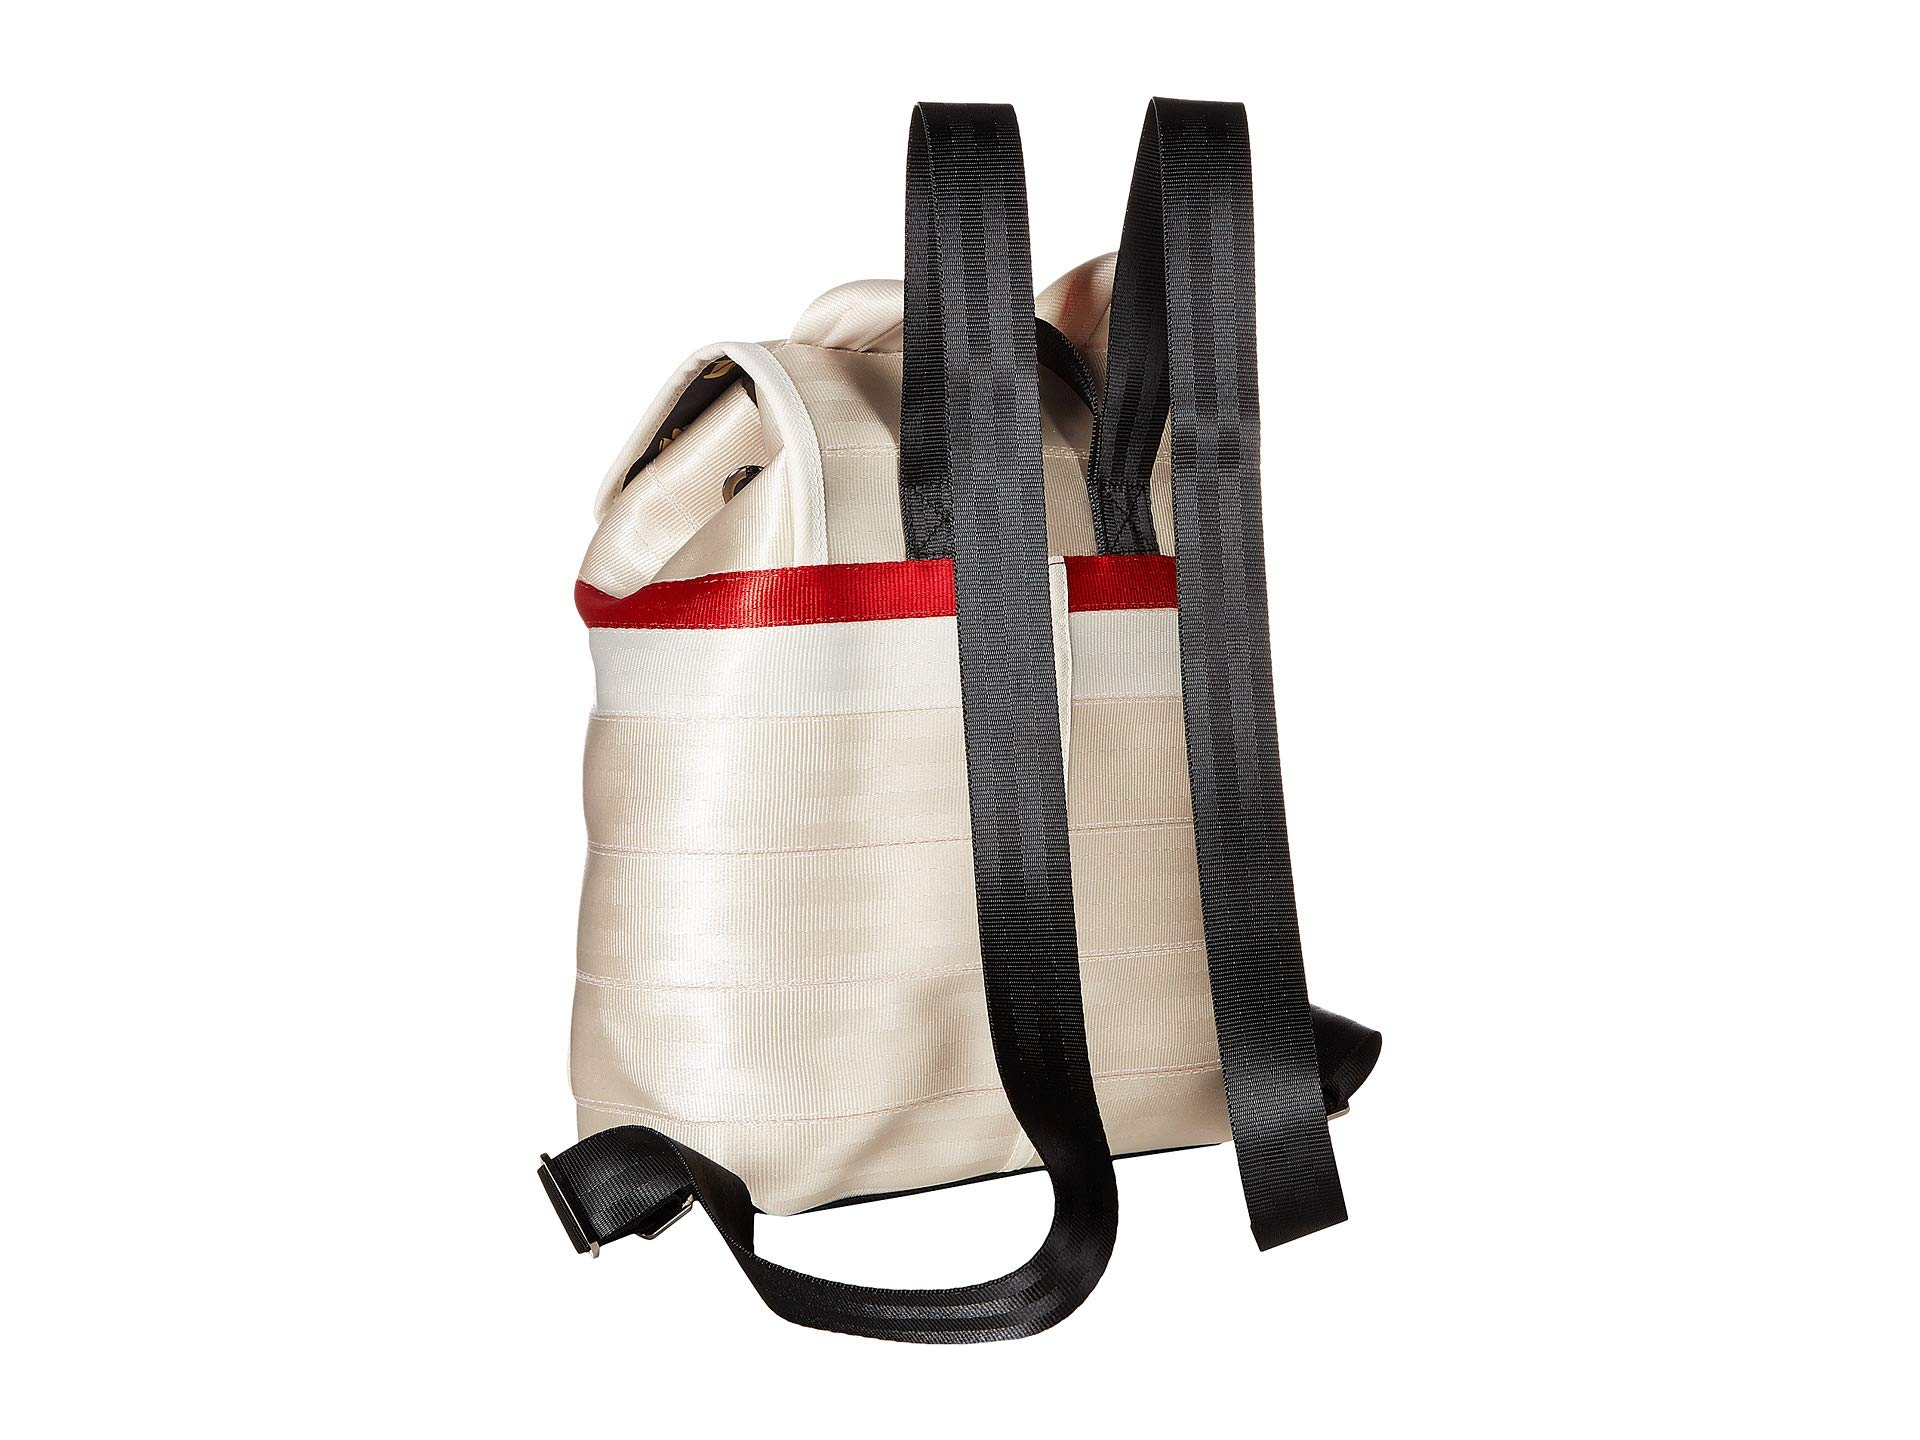 Bag Backpack Series black Harveys Seatbelt Fortune Cream Good Collector's RxC1Cqwa